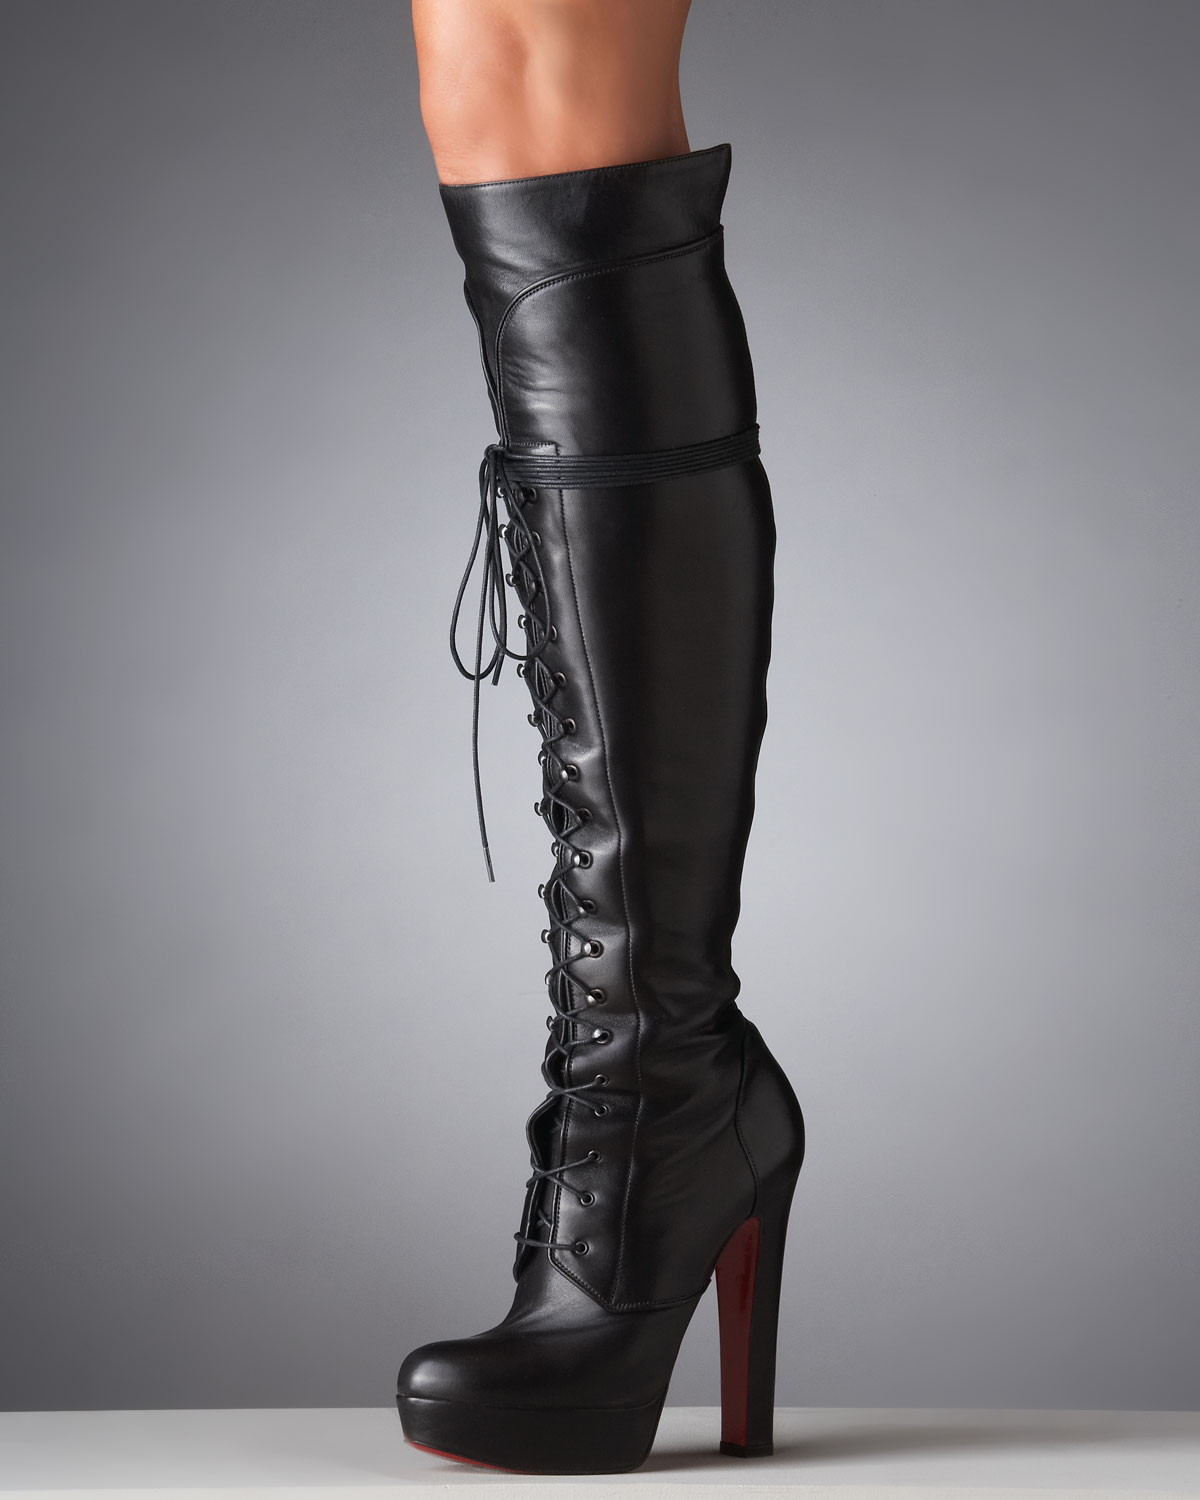 white louboutins - christian-louboutin-black-lace-up-platform-over-the-knee-boot-product-1-2578174-410556149.jpeg